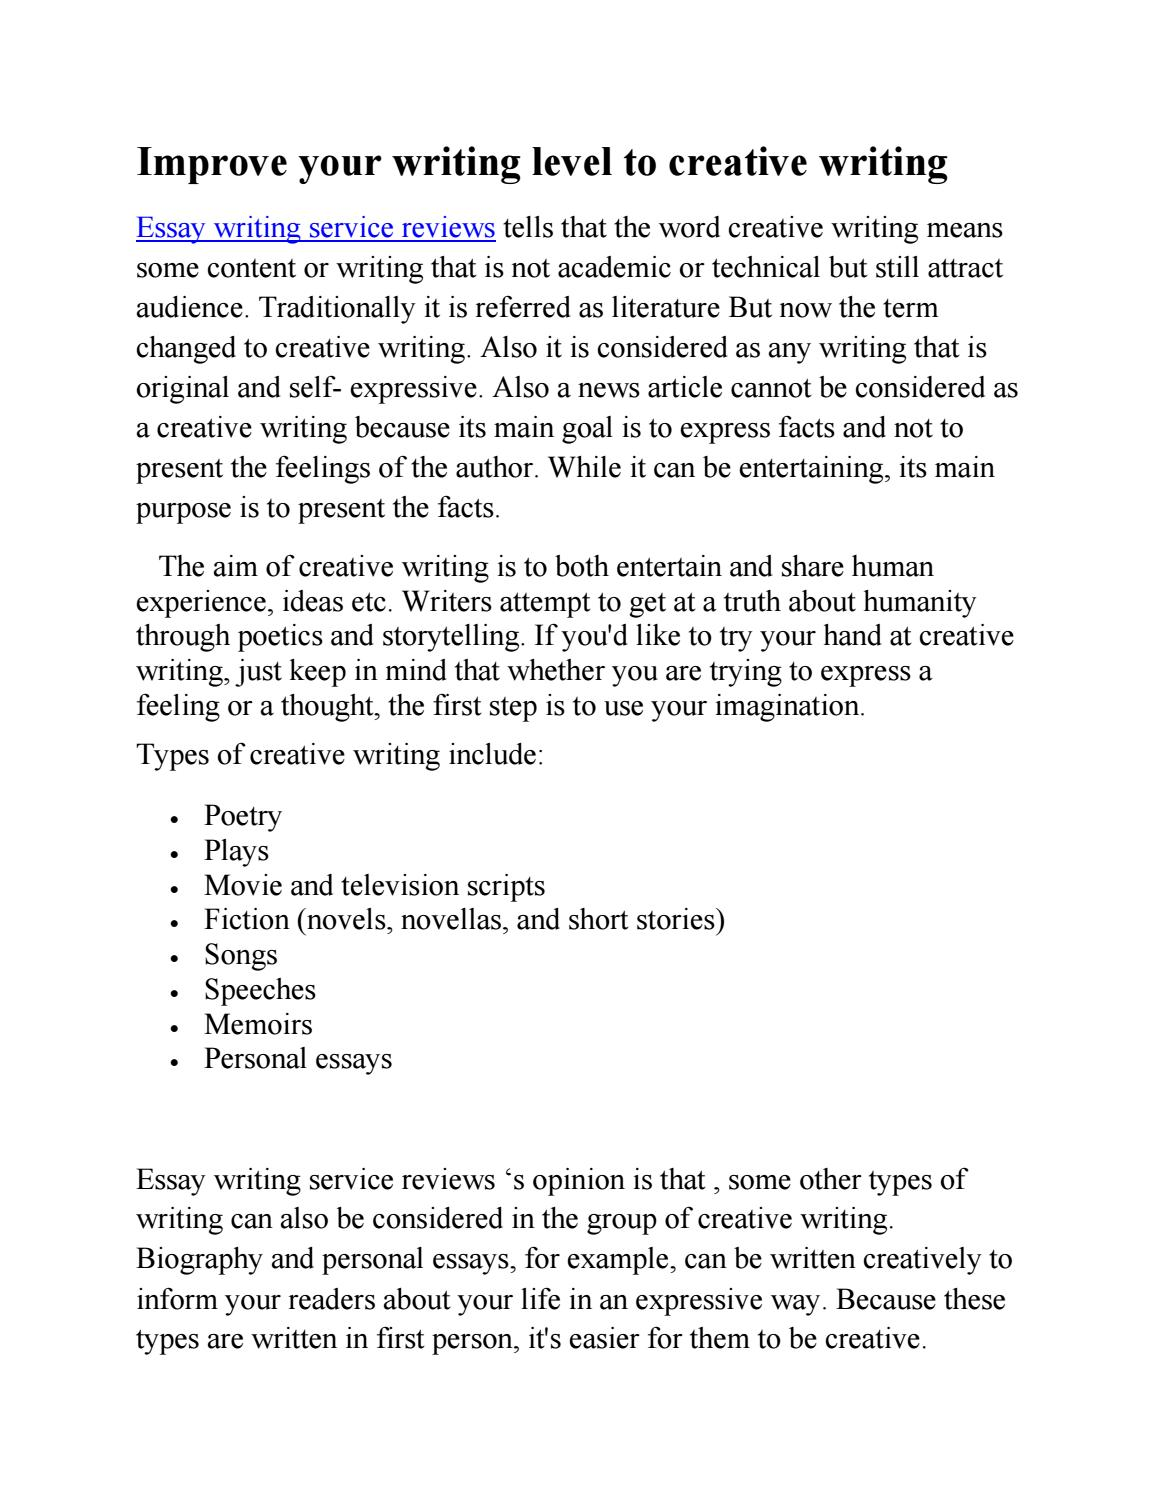 Original writing service